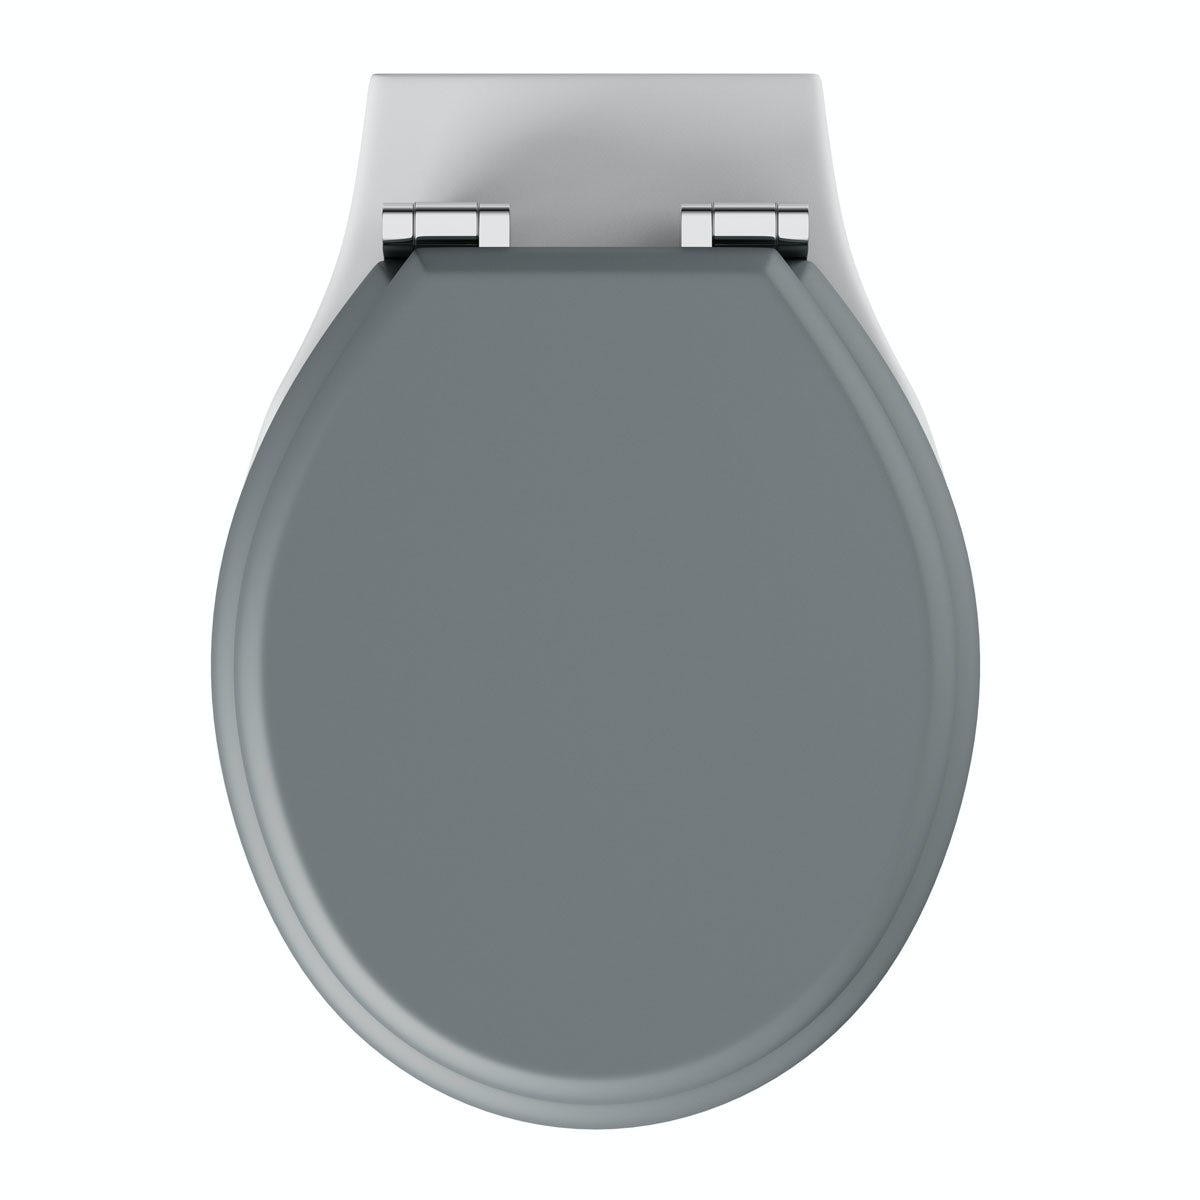 Winchester Back To Wall Toilet Inc Grey Soft Close Seat